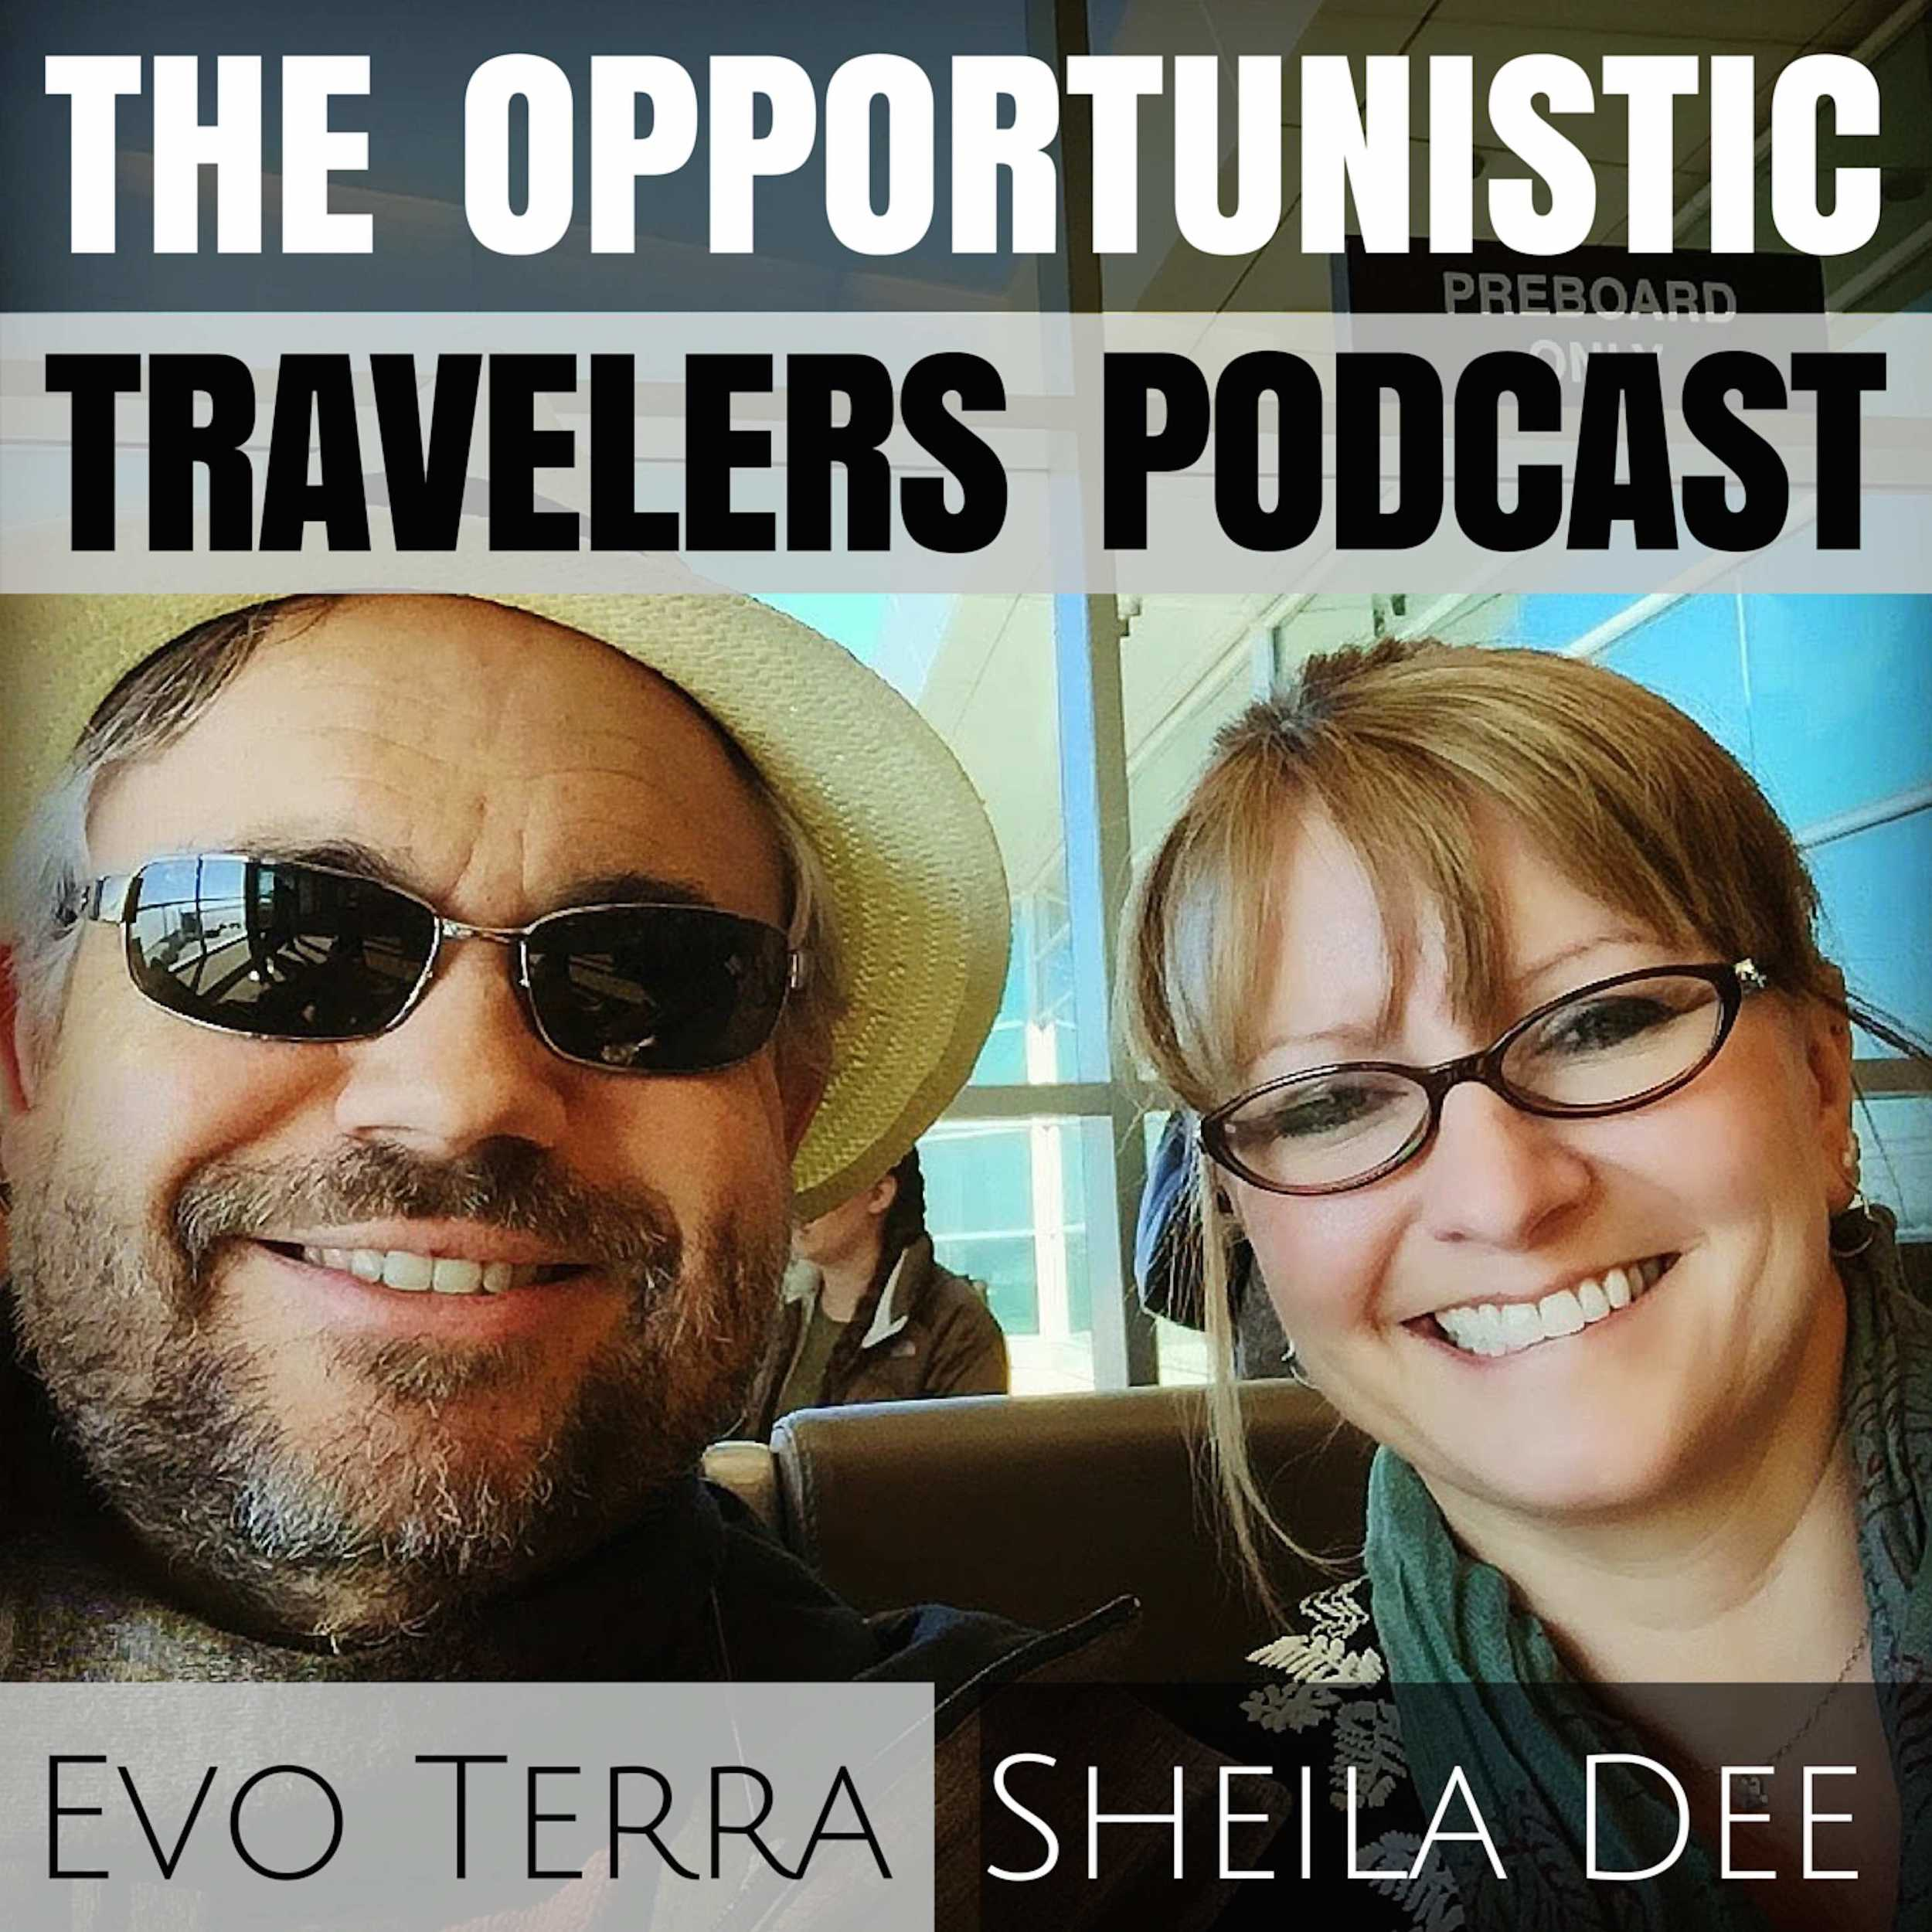 The-Opportunistict-Travelers-Podcast-Season-One